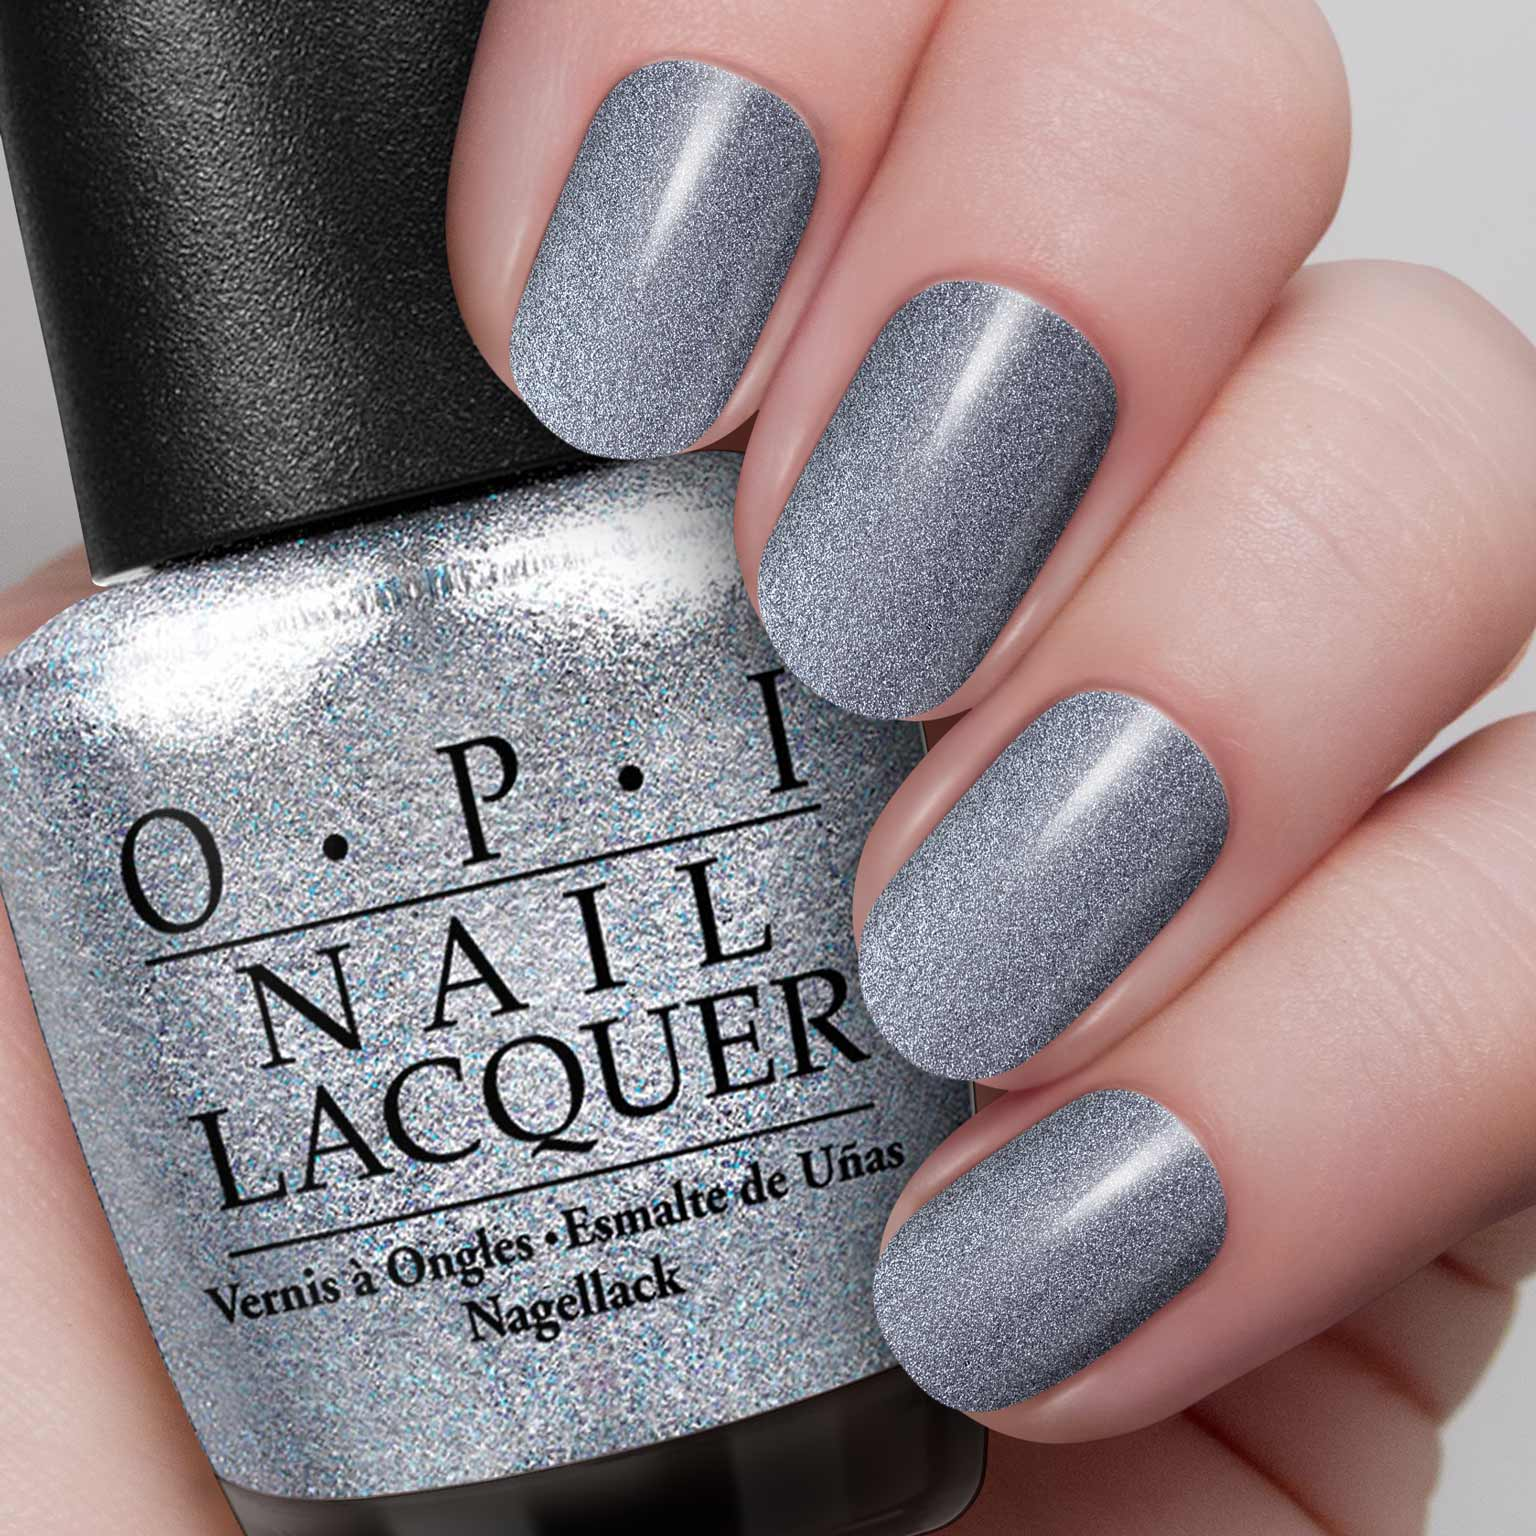 OPI launches Fifty Shades of Grey collection - OPI UK